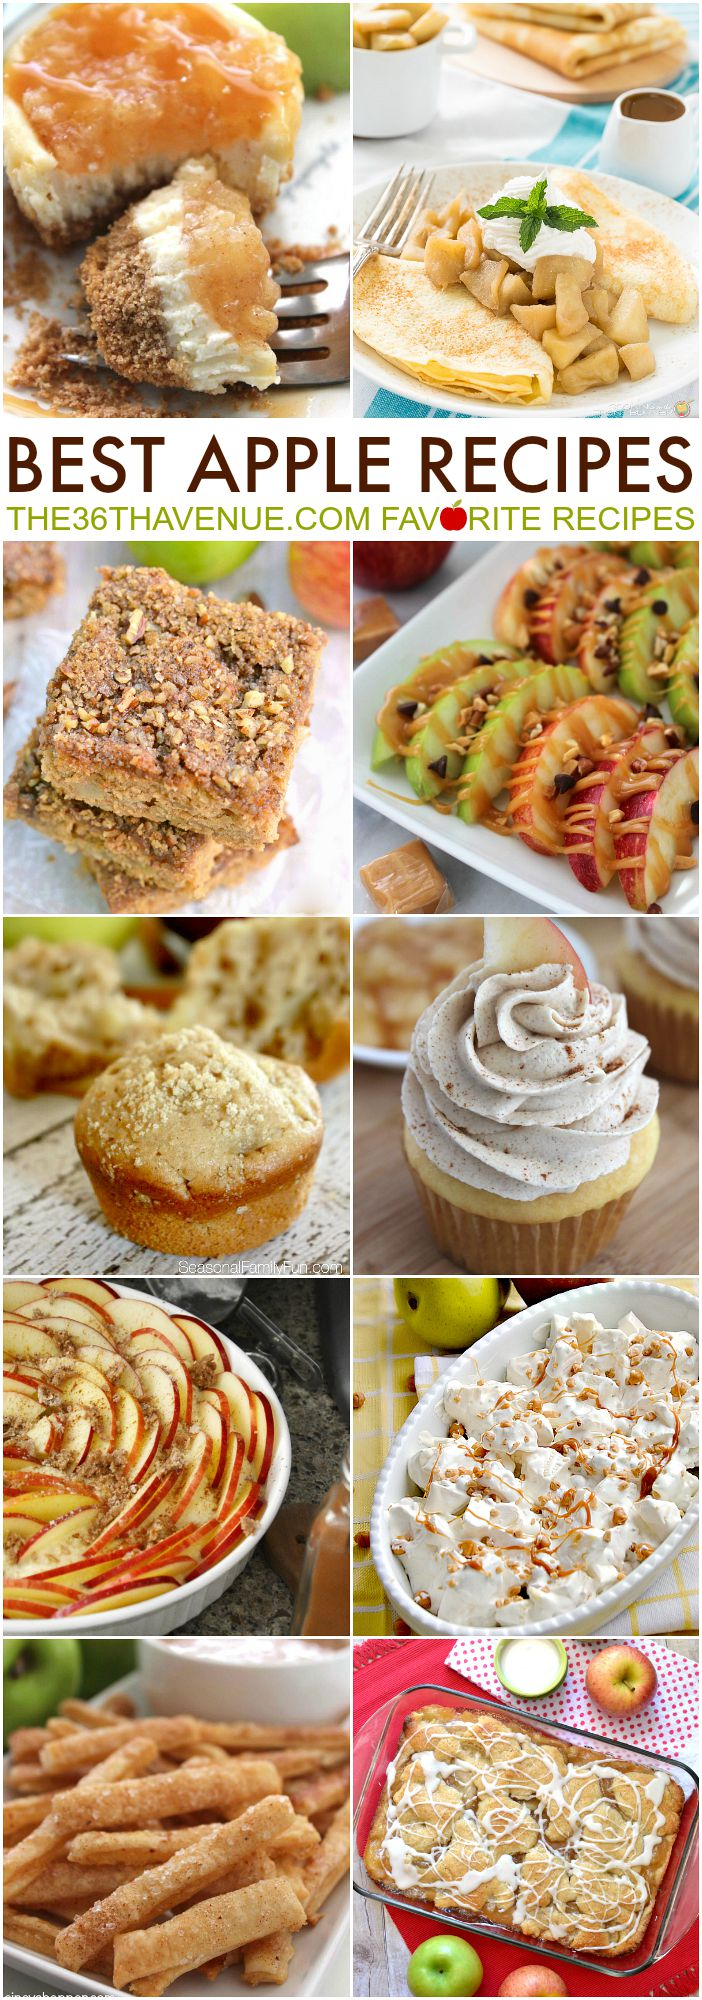 Best Apple Recipes at the36thavenue.com